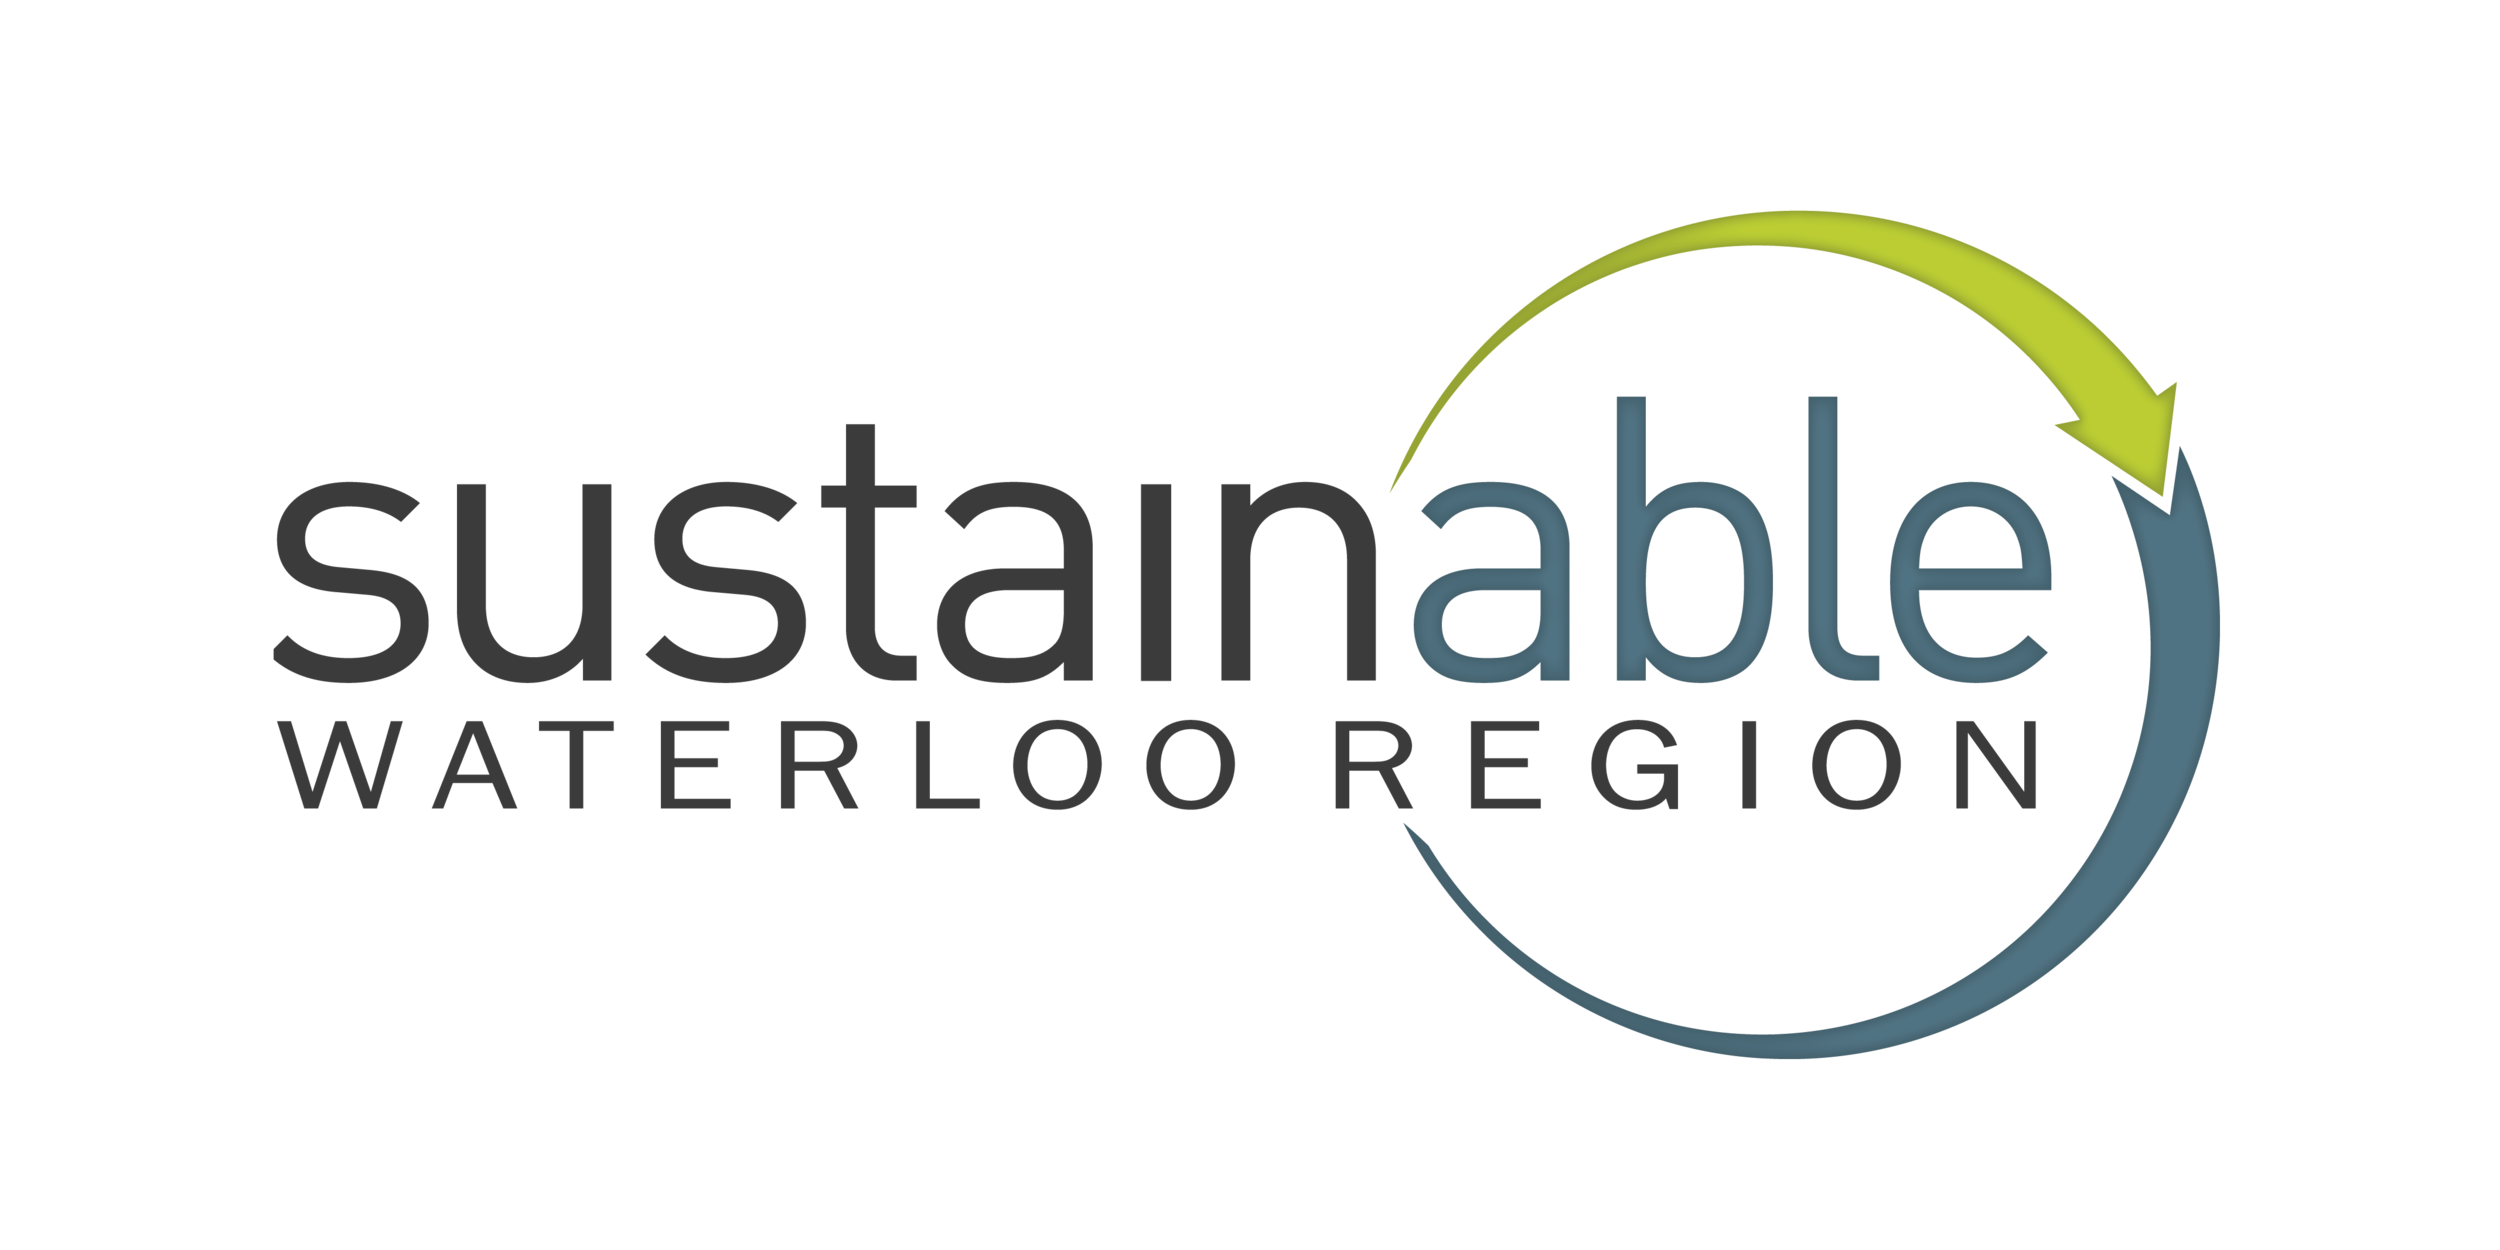 Sustainable WR-logo-01.png